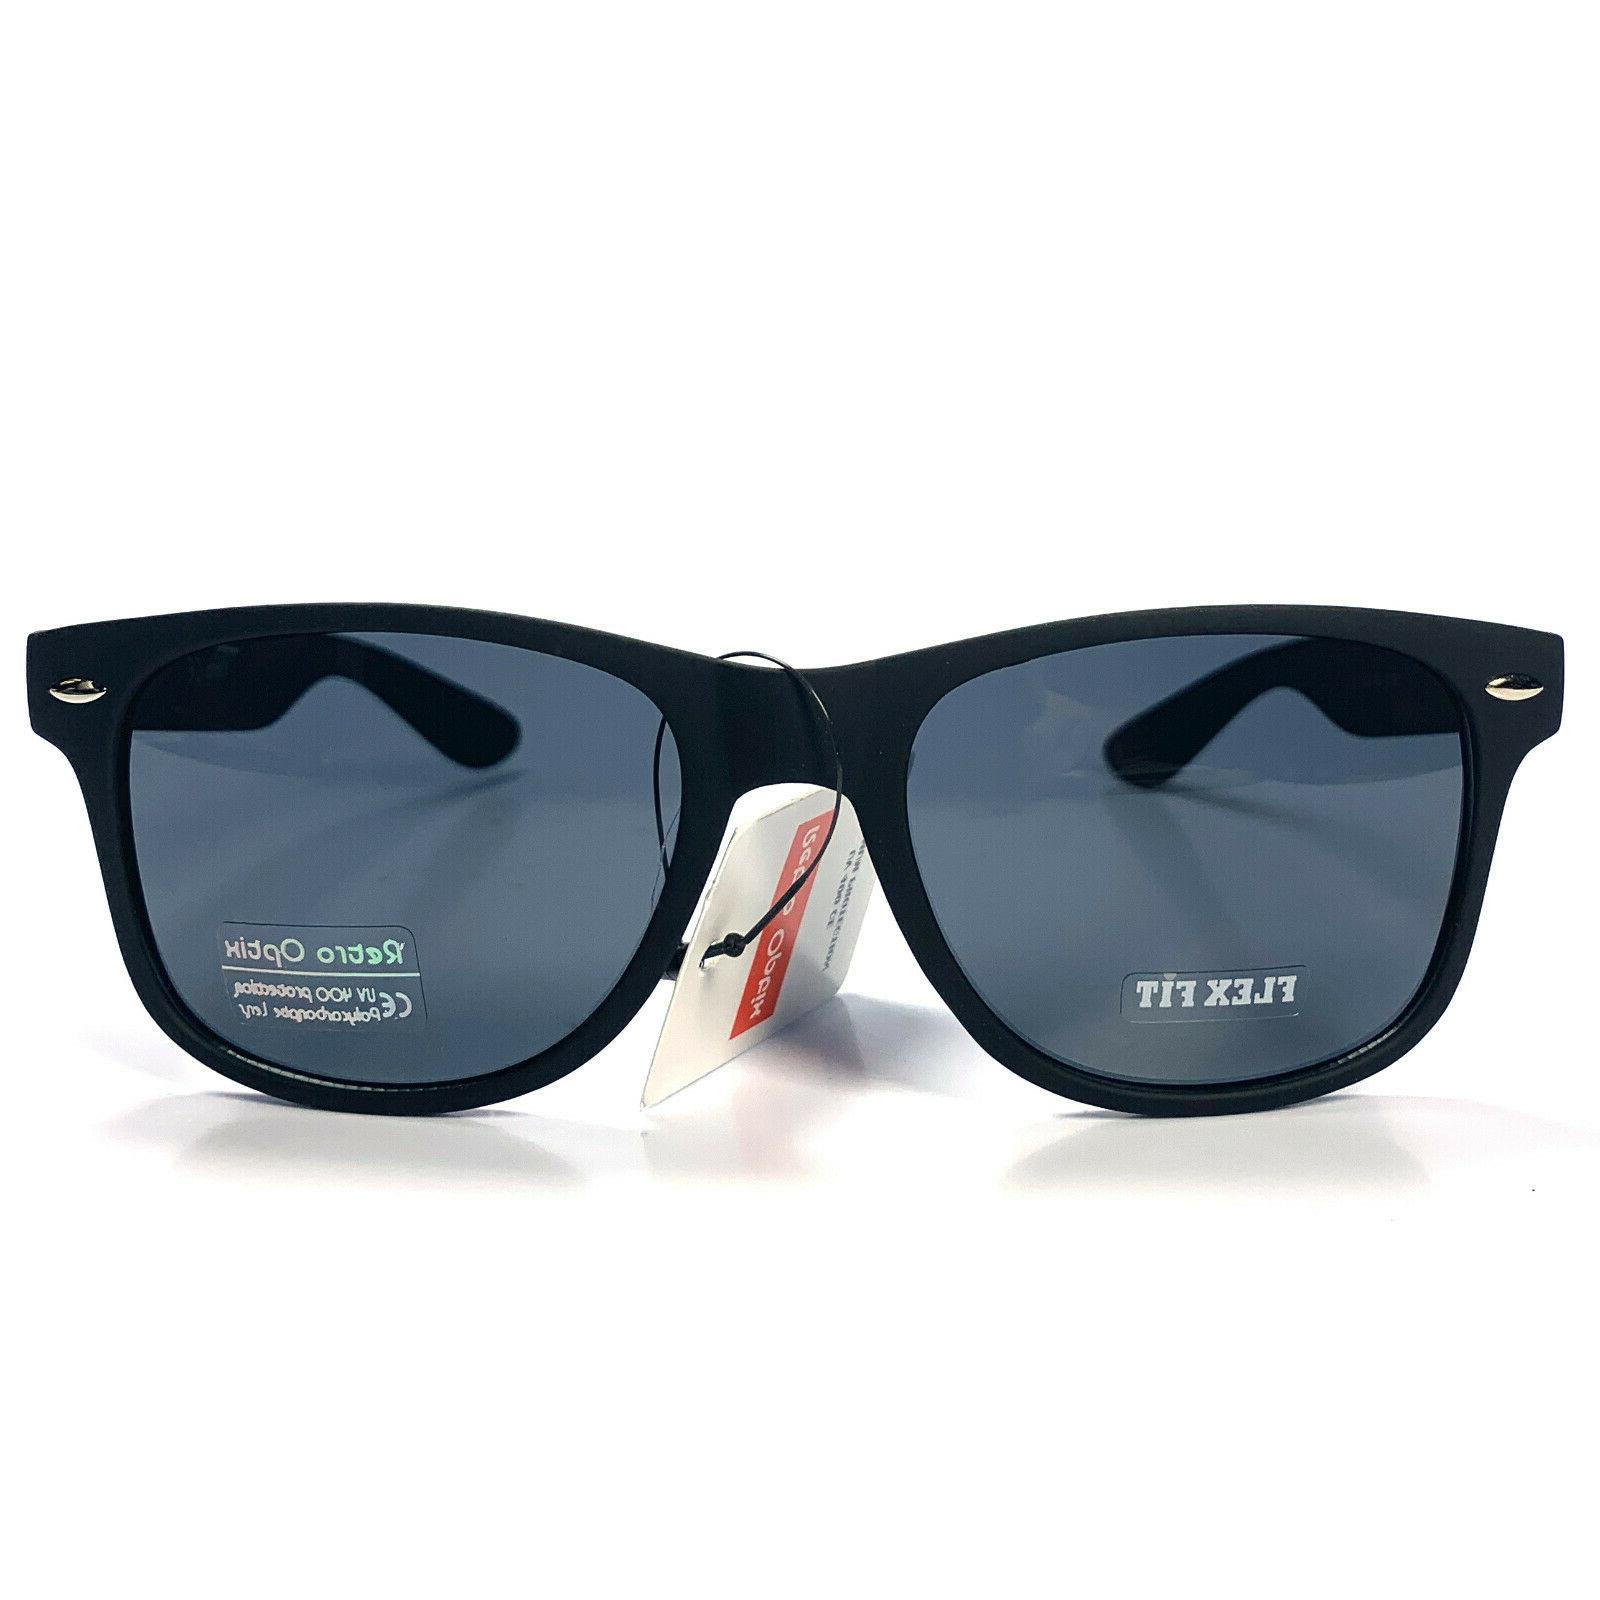 Retro Optix Style Sunglasses 1 pc SUN-103